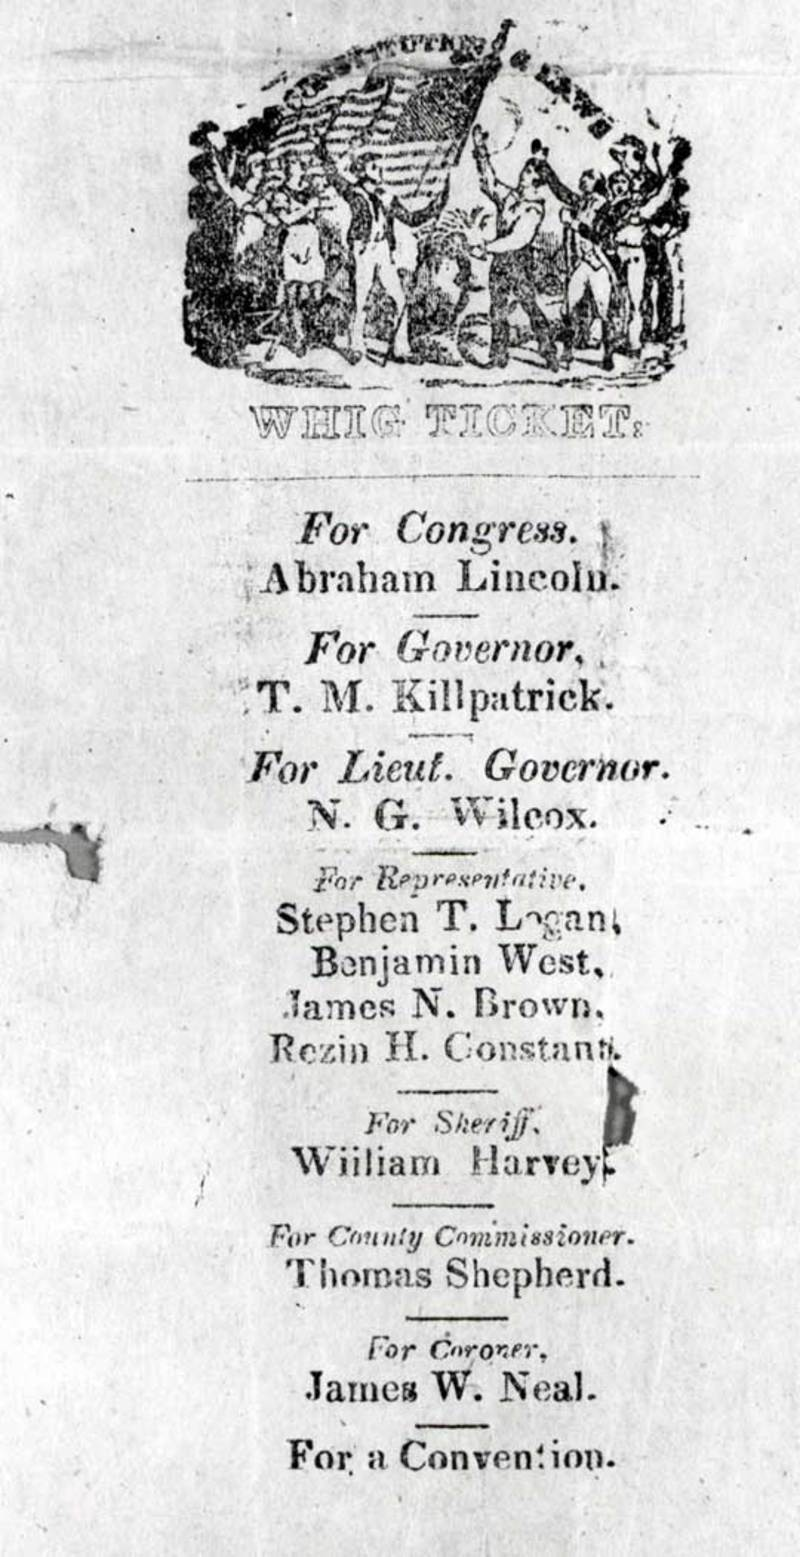 Whig Ticket, 1846